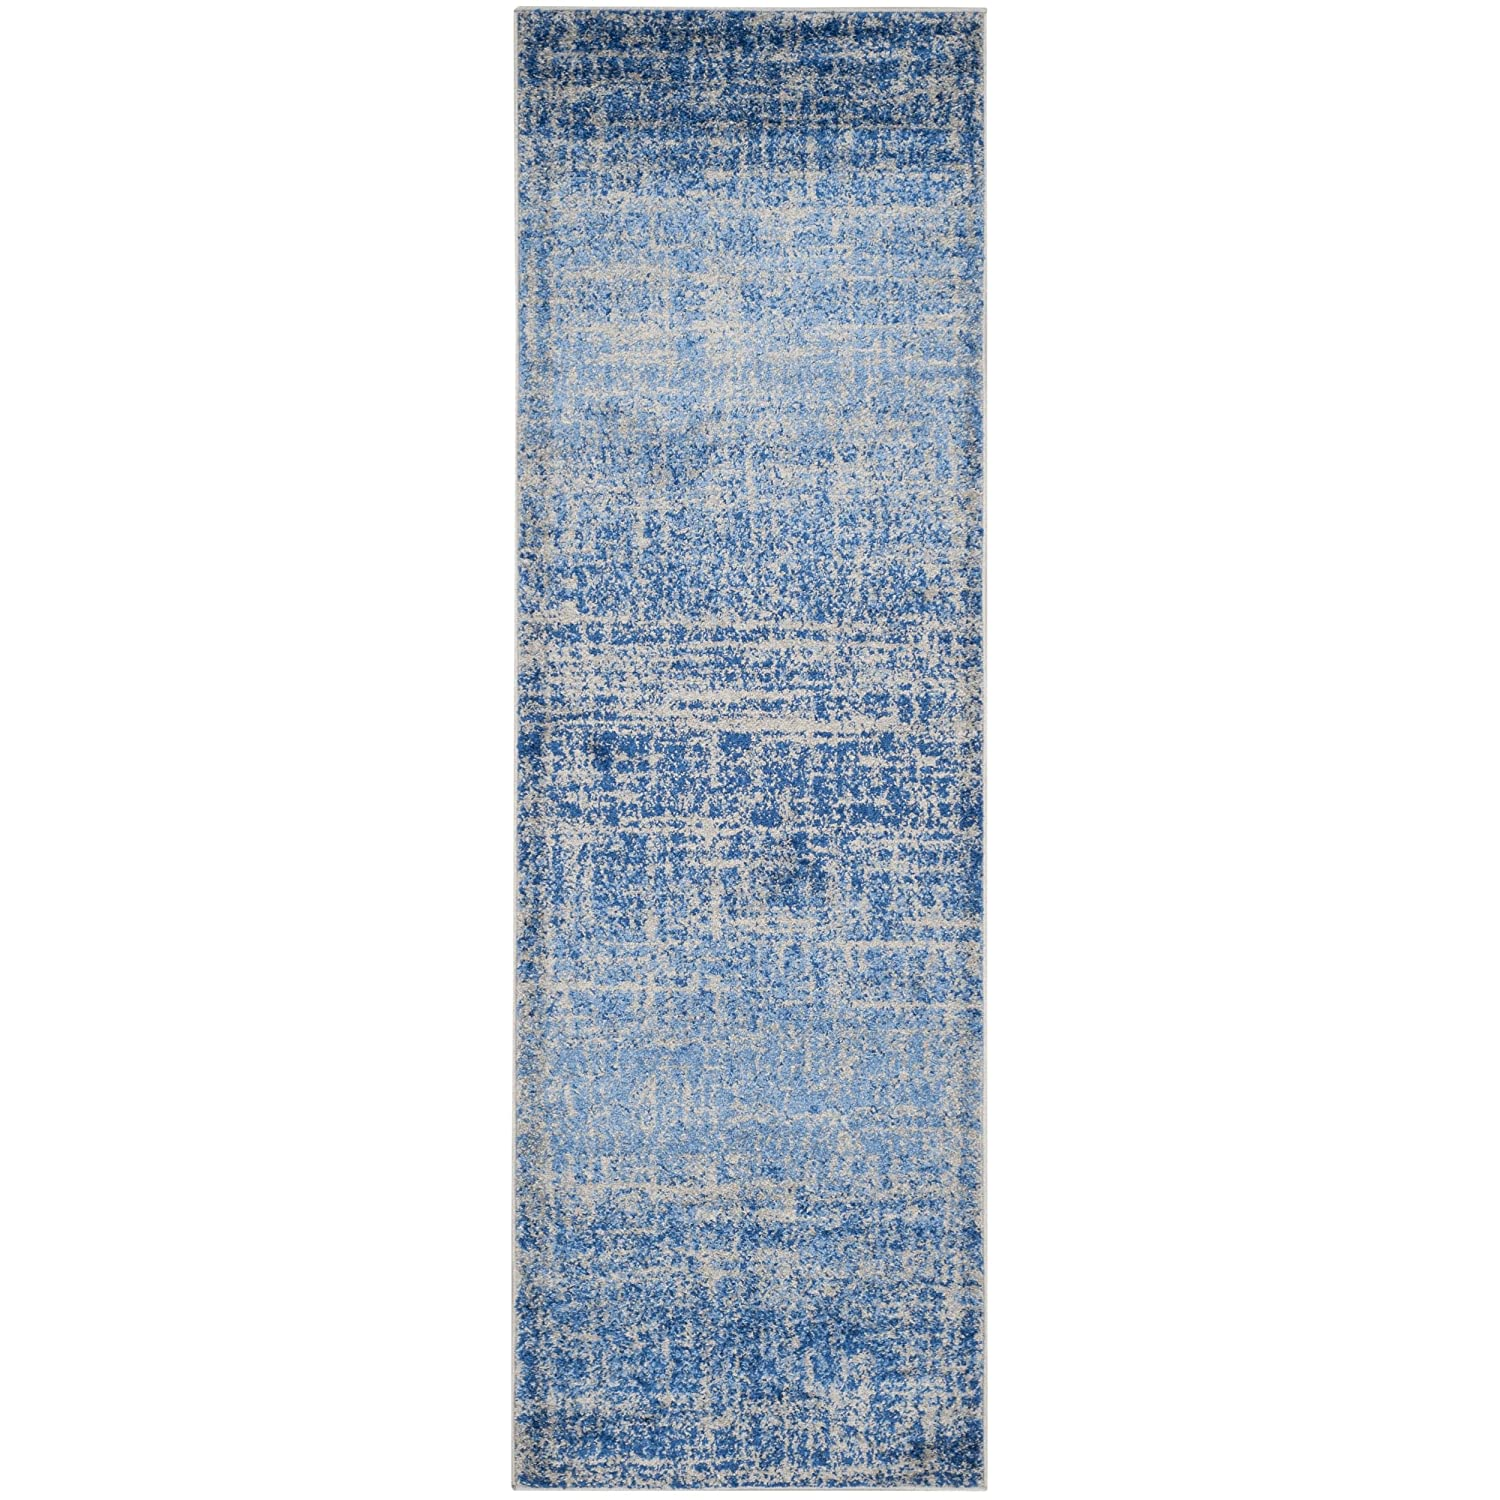 26 x 4 Safavieh Adirondack Collection ADR116D Blue and Silver Modern Abstract Area Rug